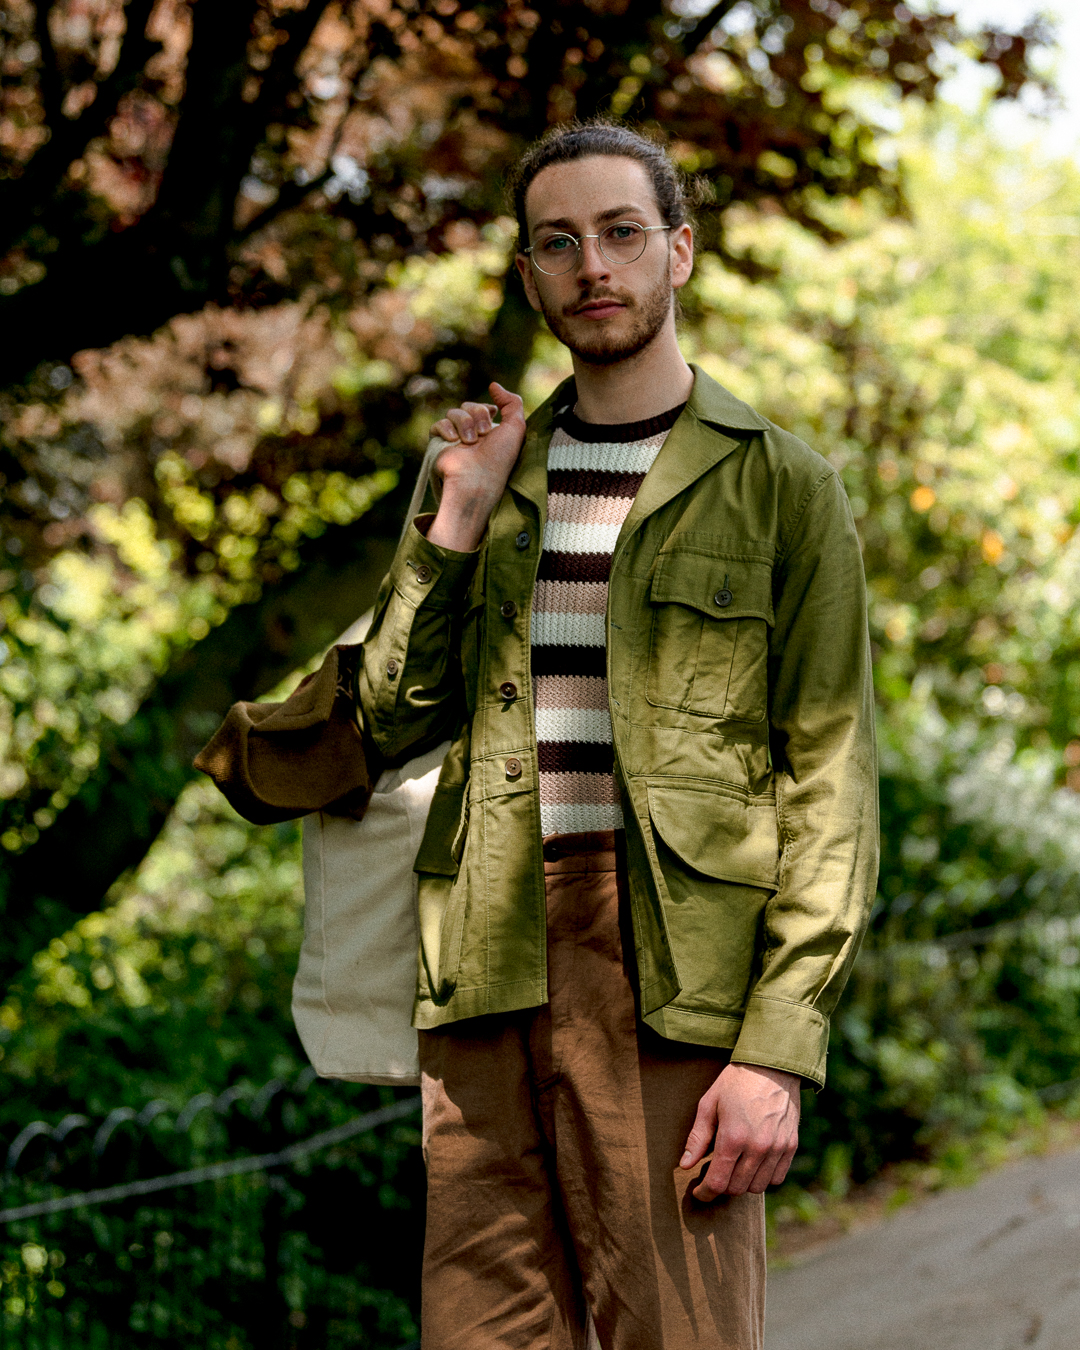 SOUNDMAN 643M-906N WHITBY JACKET BEIGE - CLUTCH CAFE LONDON - SAFARI JACKET